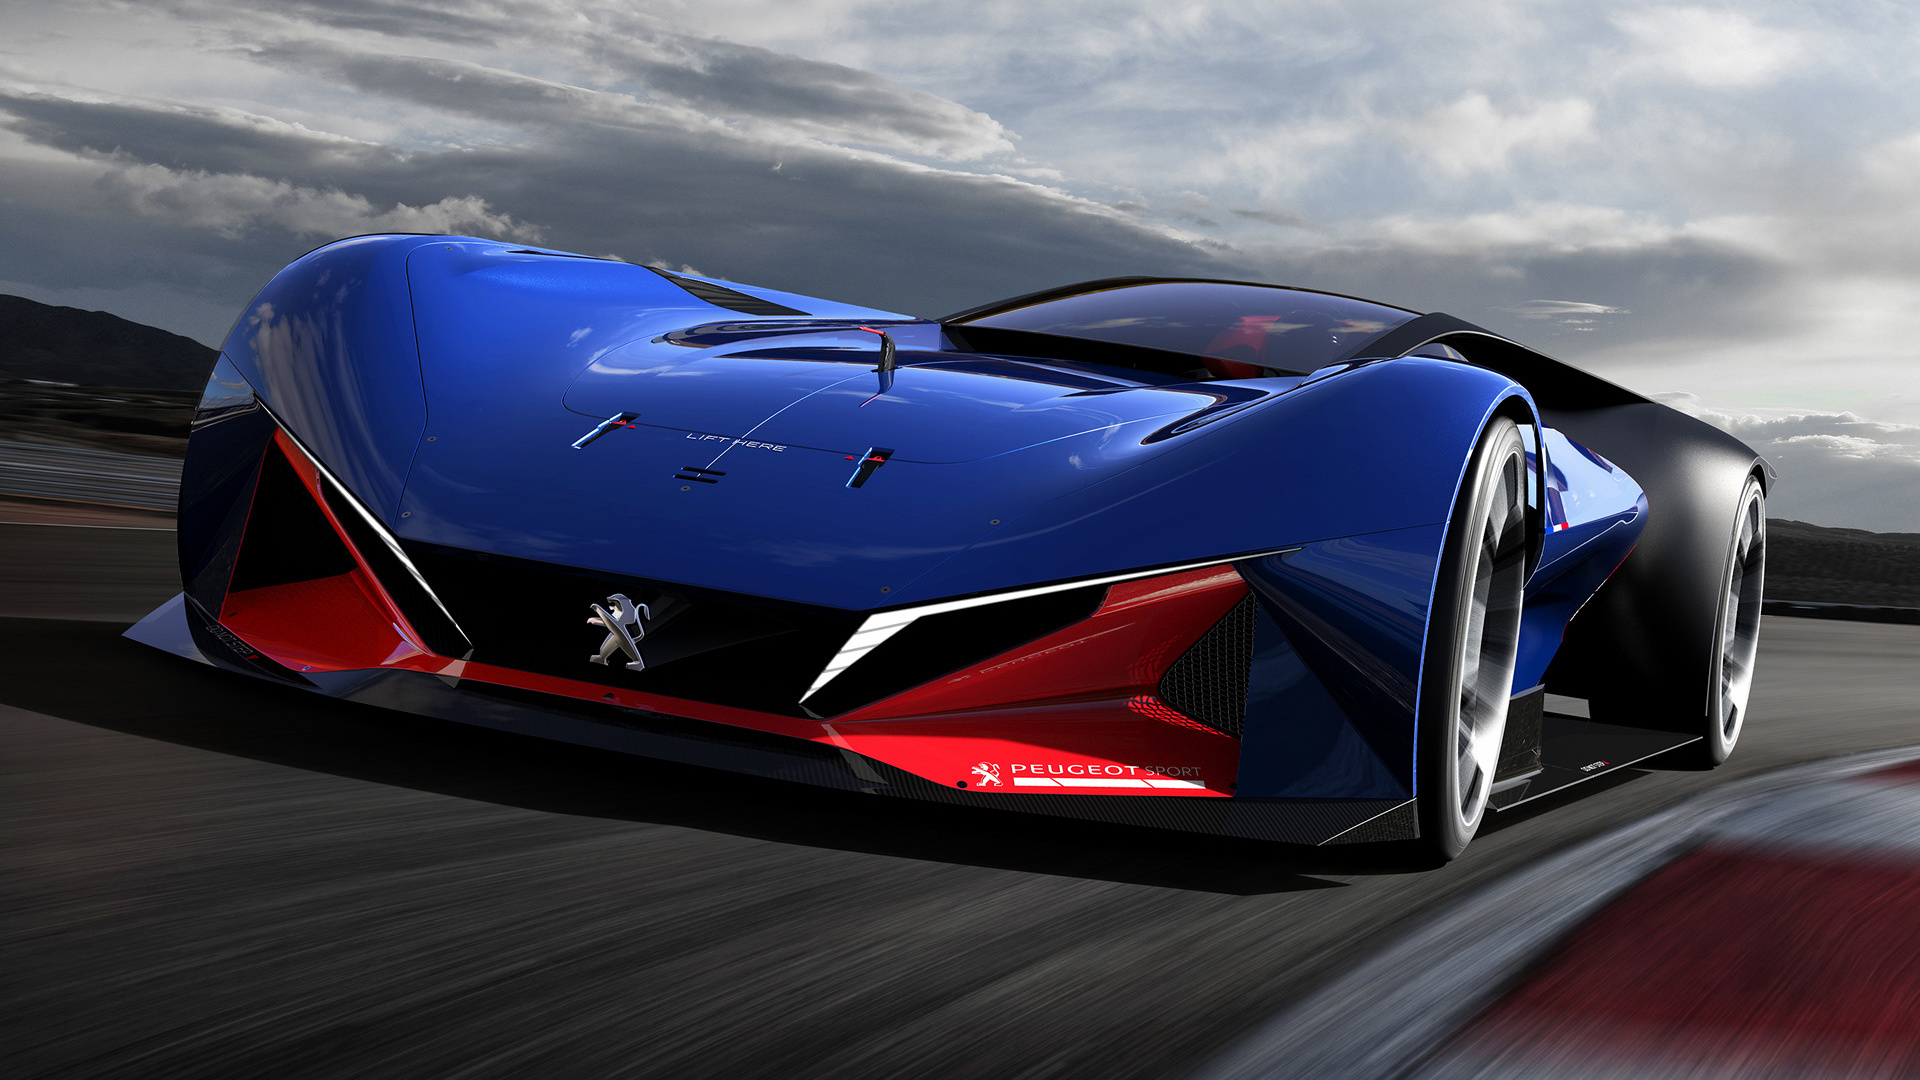 2016 Peugeot L500 R Hybrid Concept Wallpapers And Hd